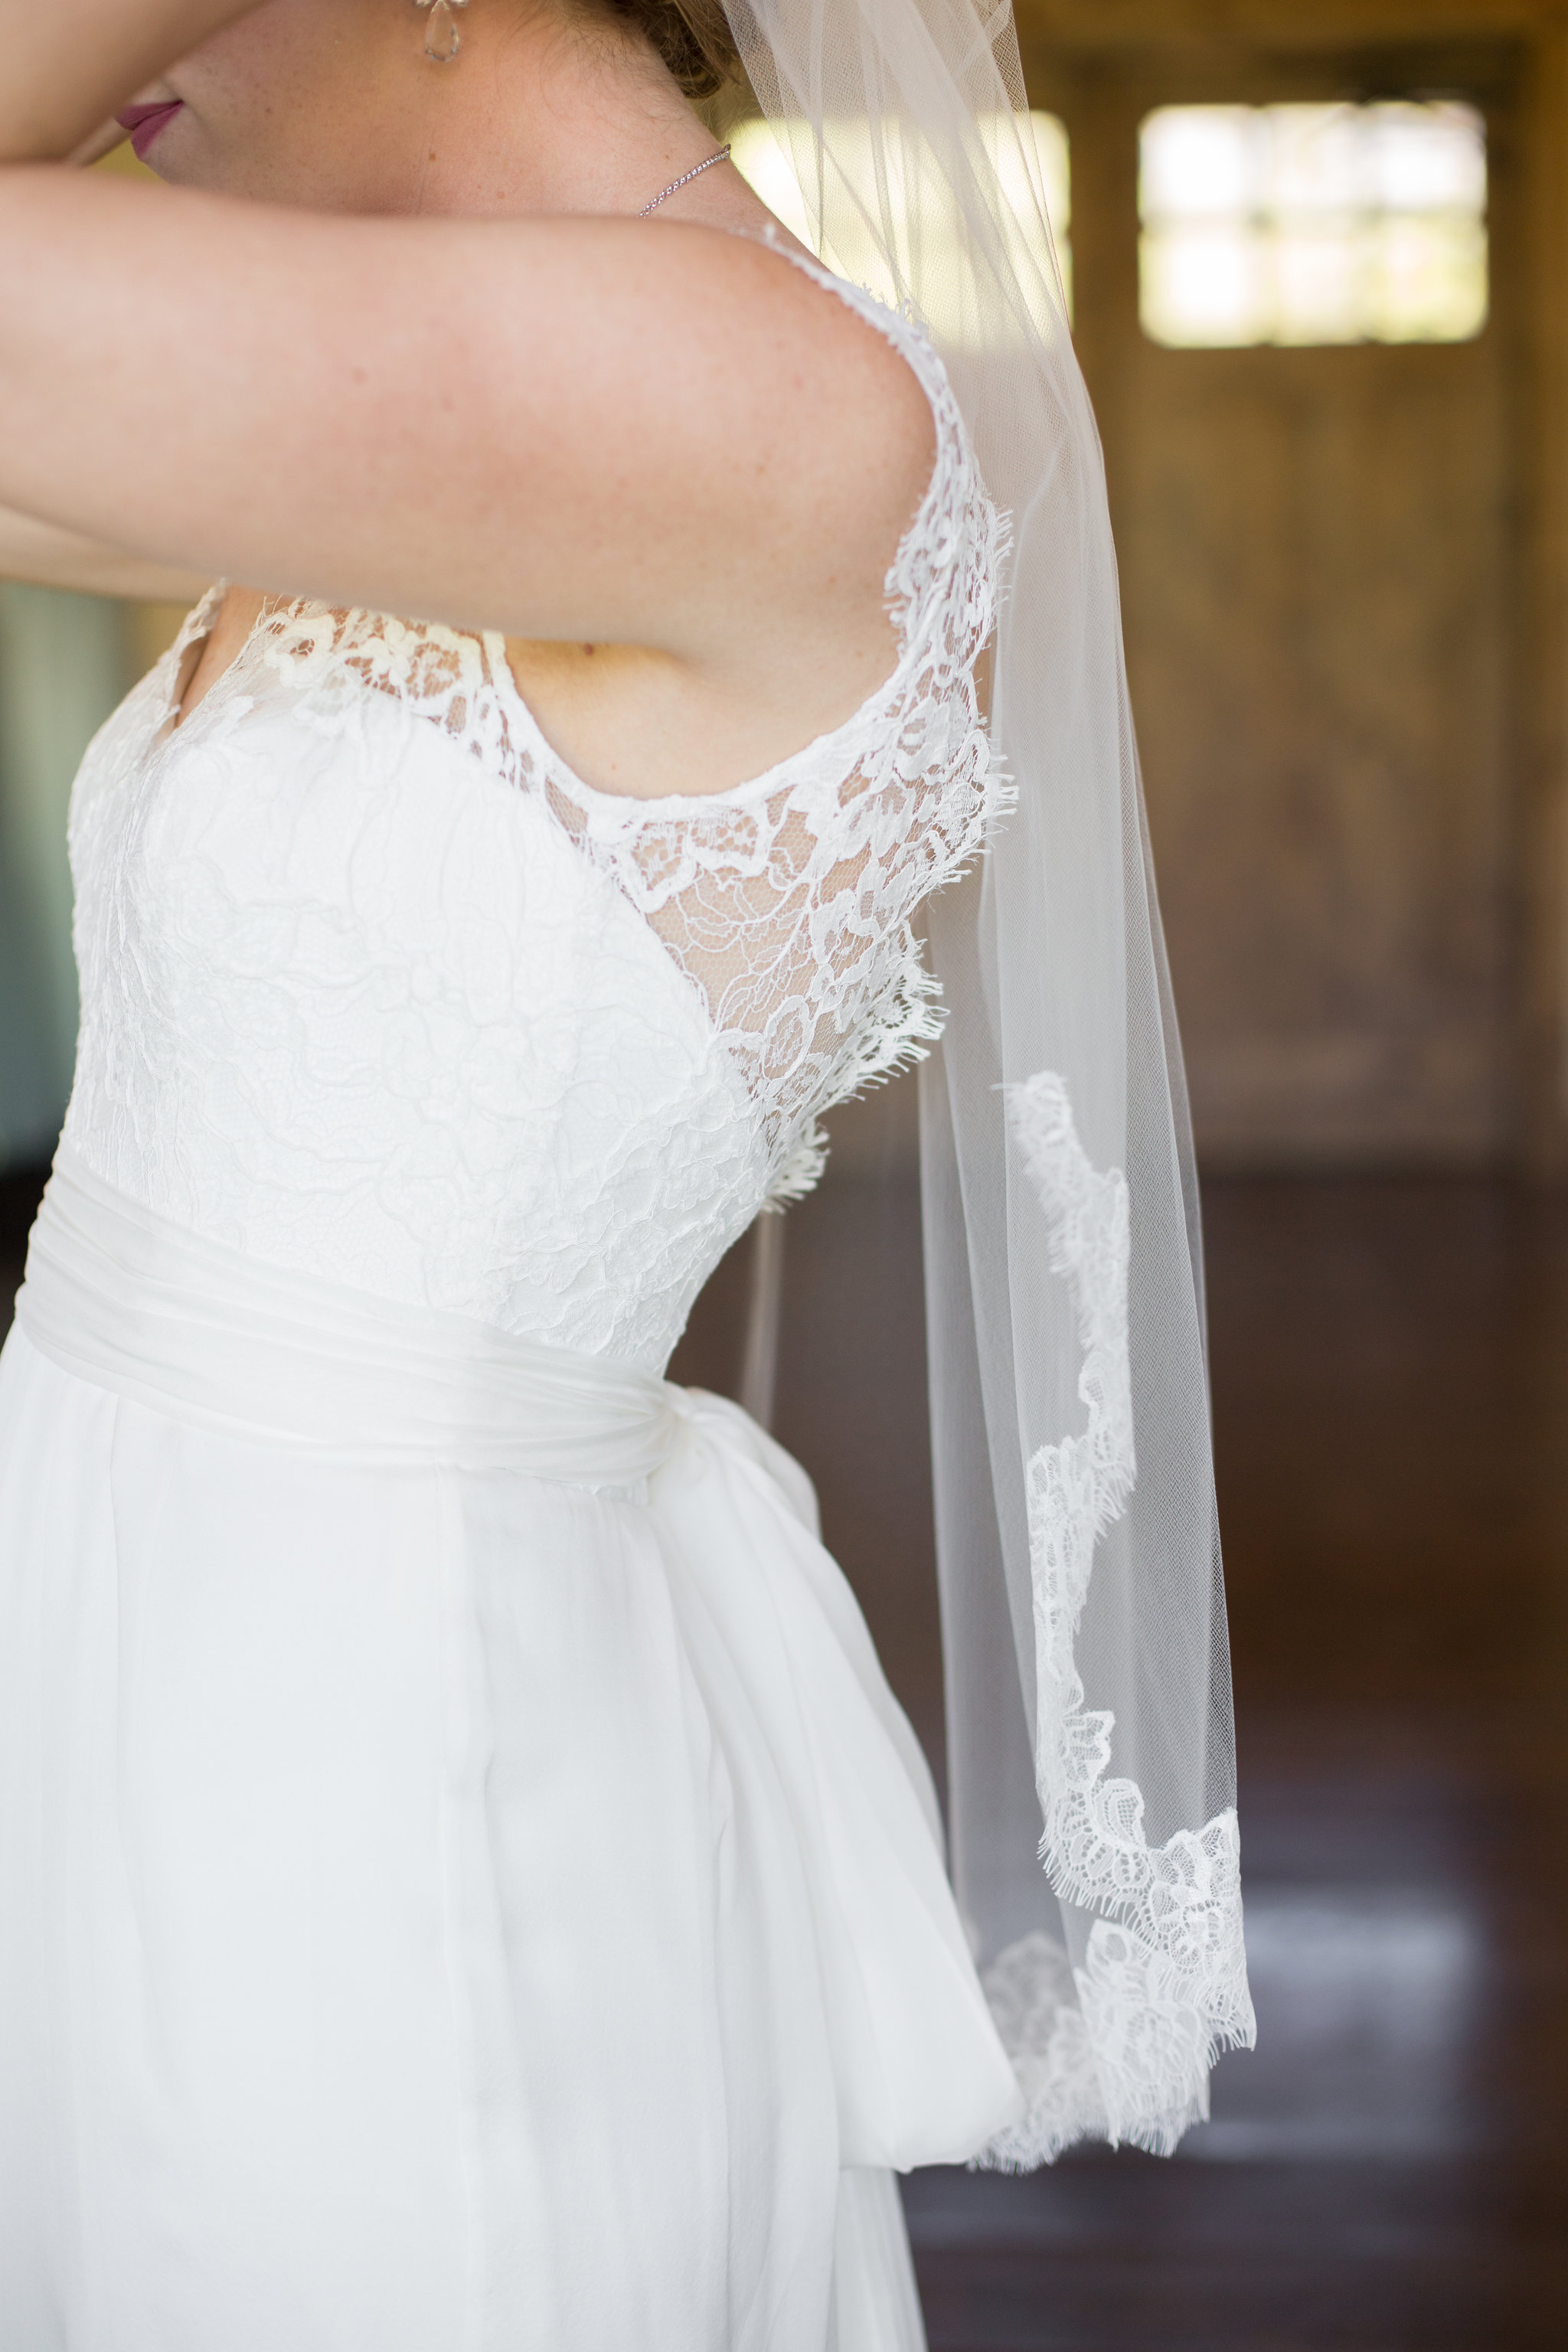 Devil's Thumb Ranch Wedding, Devil's Thumb Wedding Dress, Denver Wedding Dress, Devil's Thumb Ranch